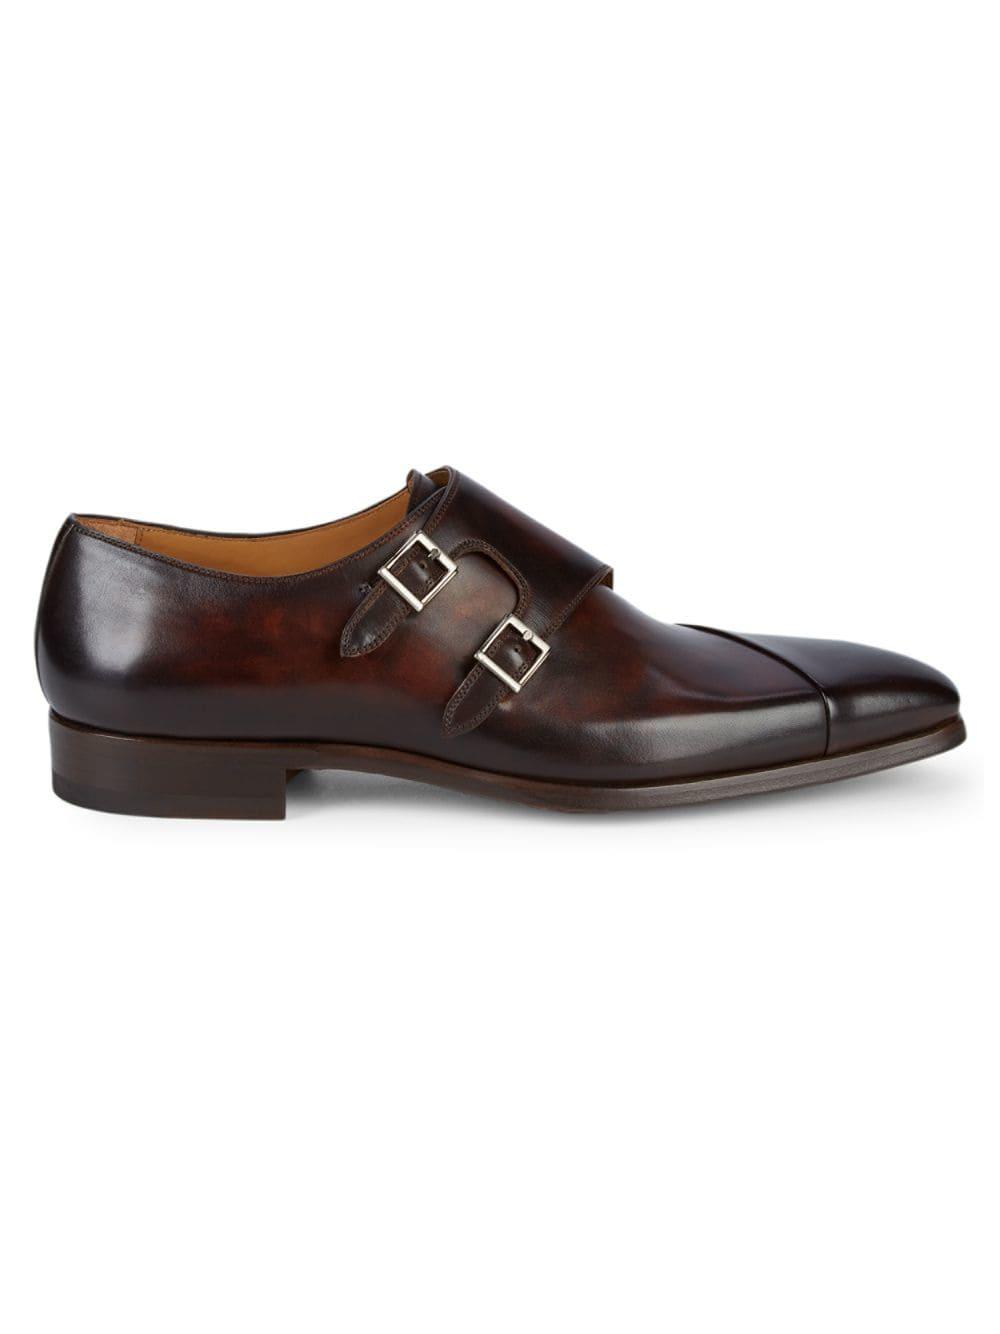 4a142d6f42d Lyst - Magnanni Hafiz Double Monk-strap Leather Dress Shoes in Brown ...